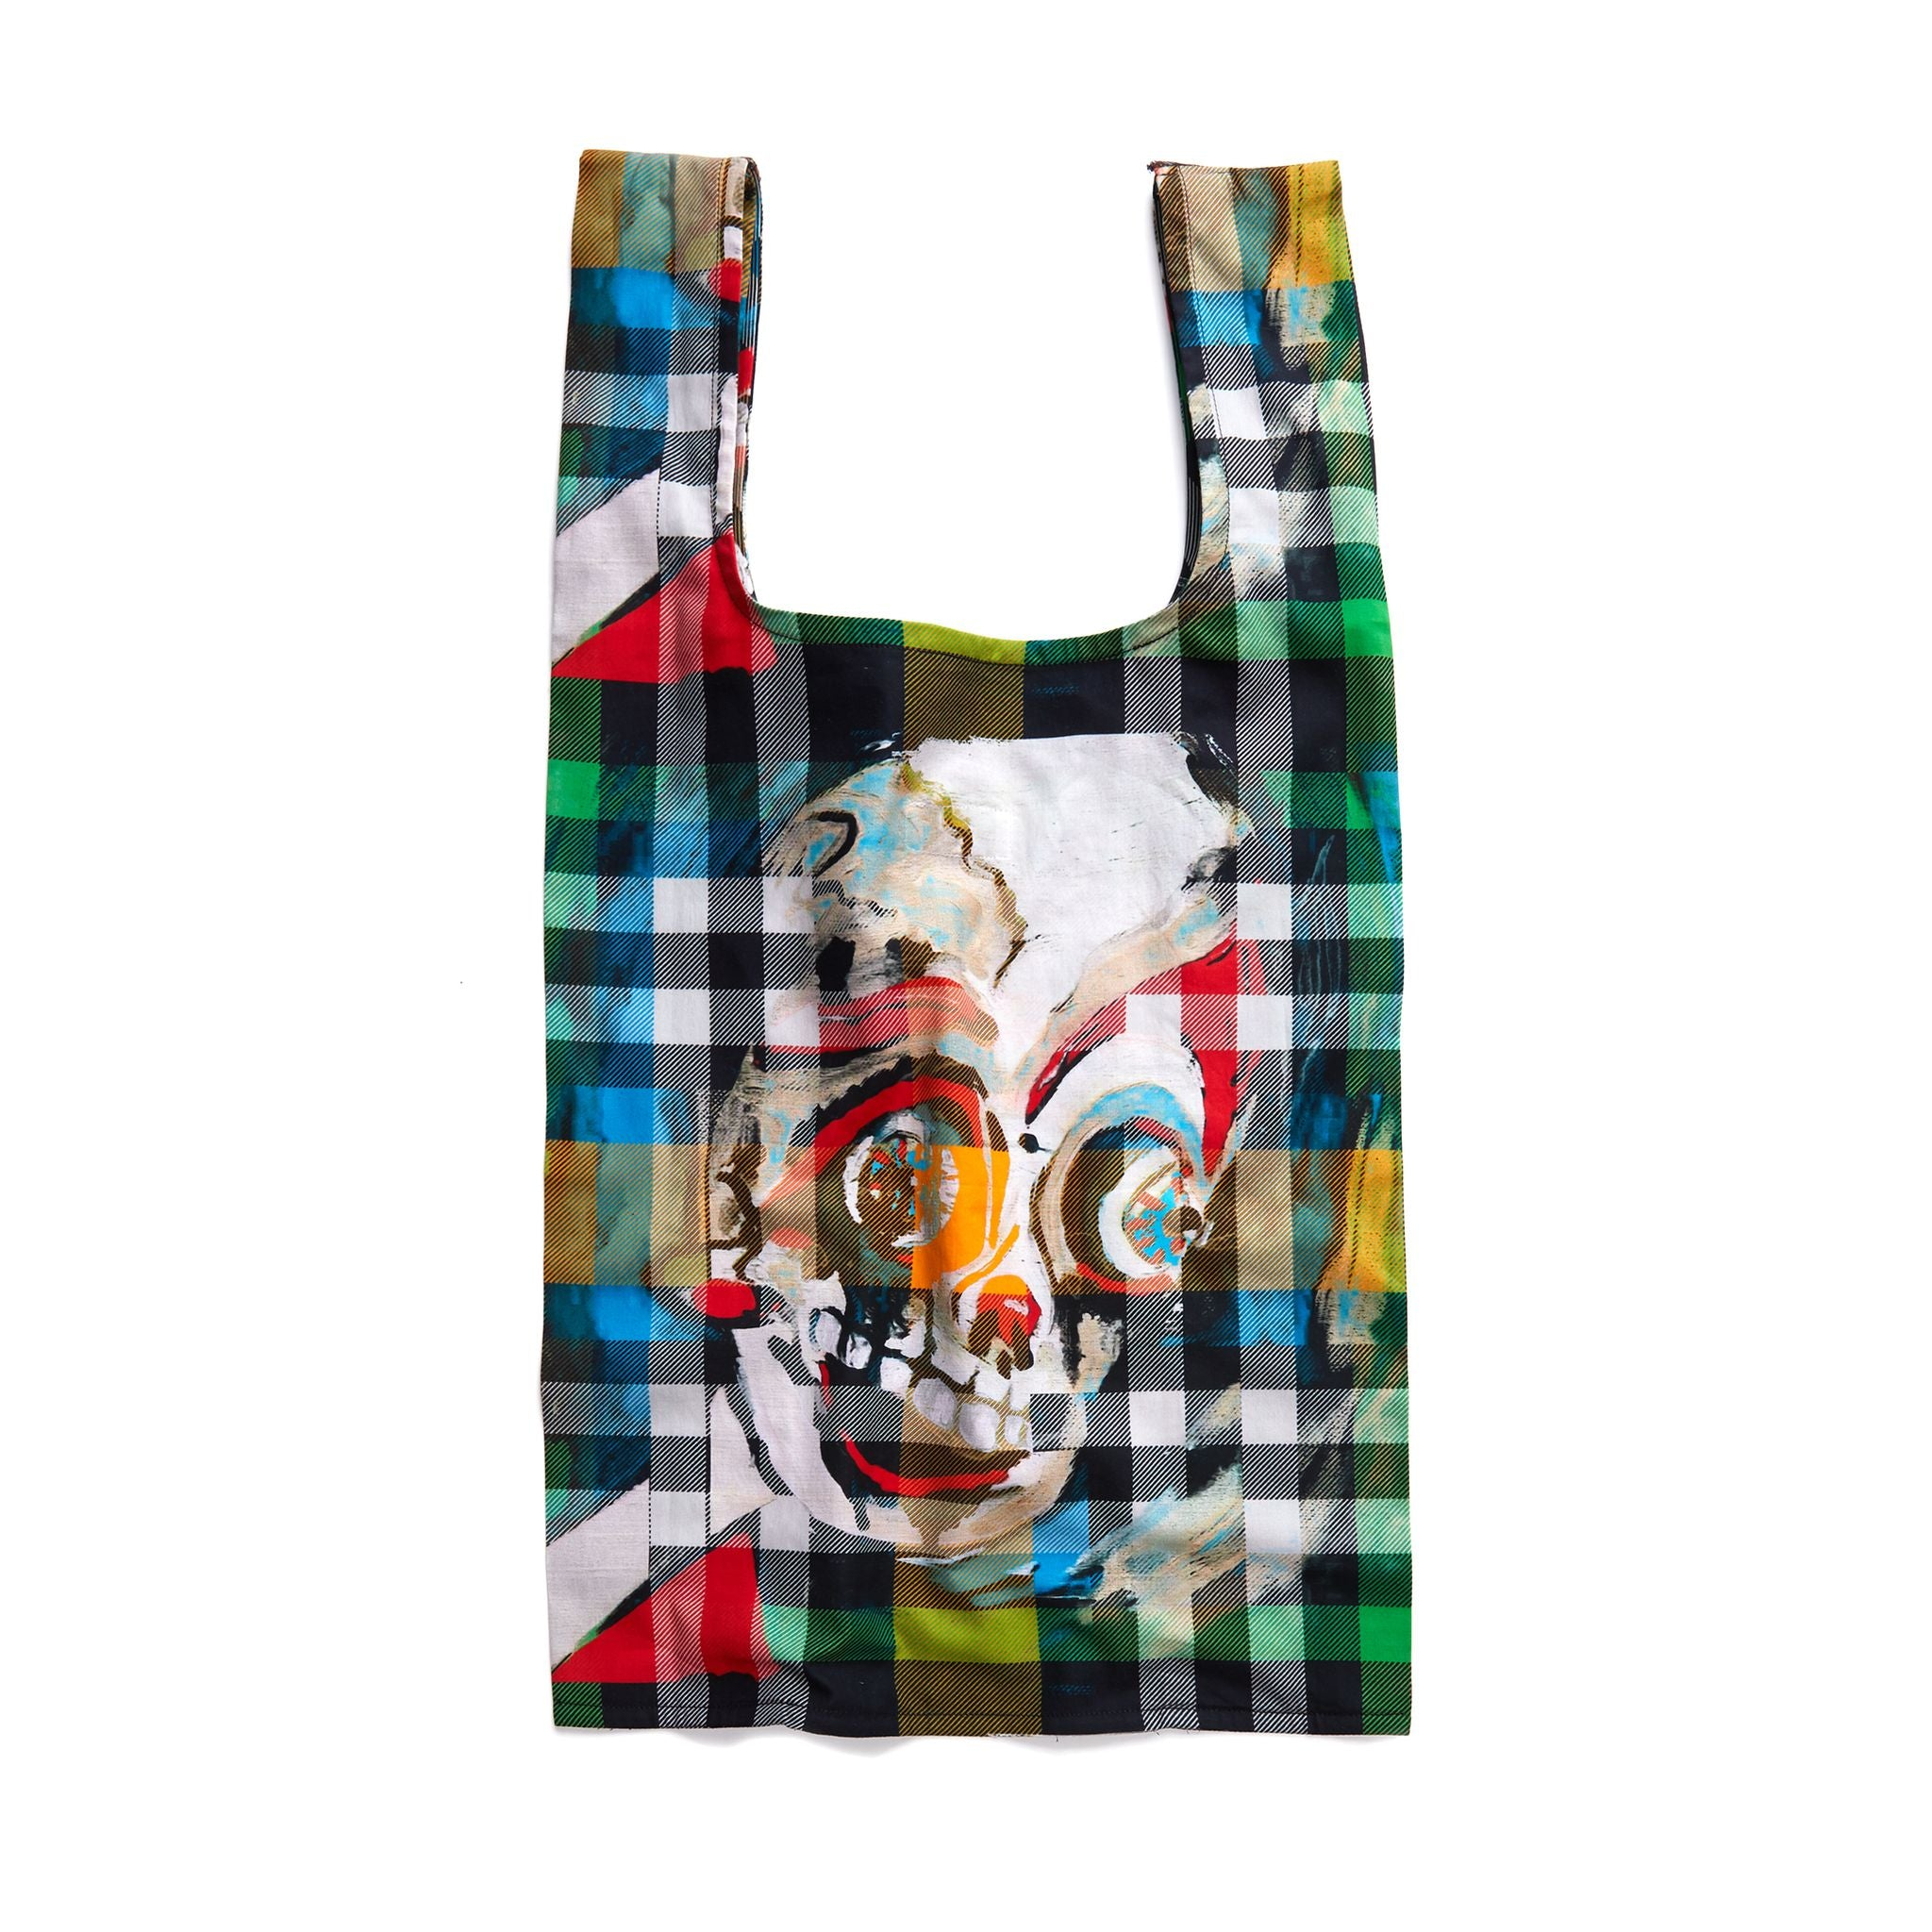 The Scooter Skeleton Boy Plaid Thank You Bag